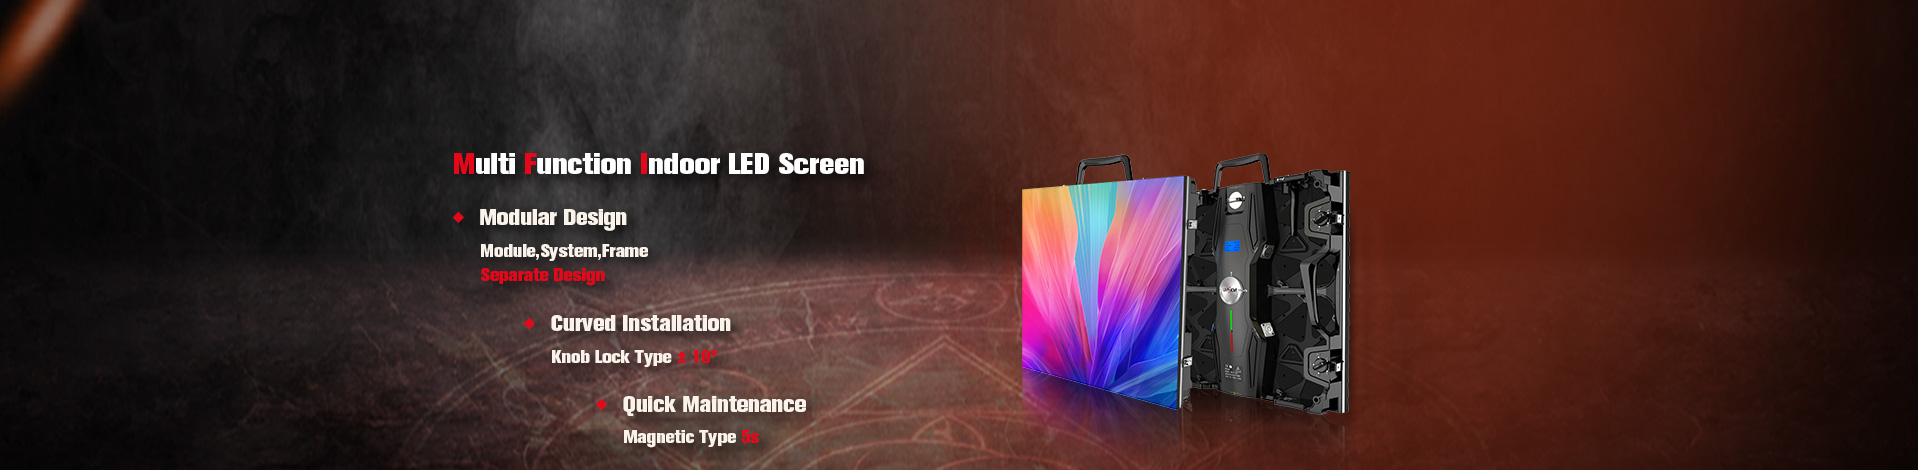 Li Series Indoor LED Screen